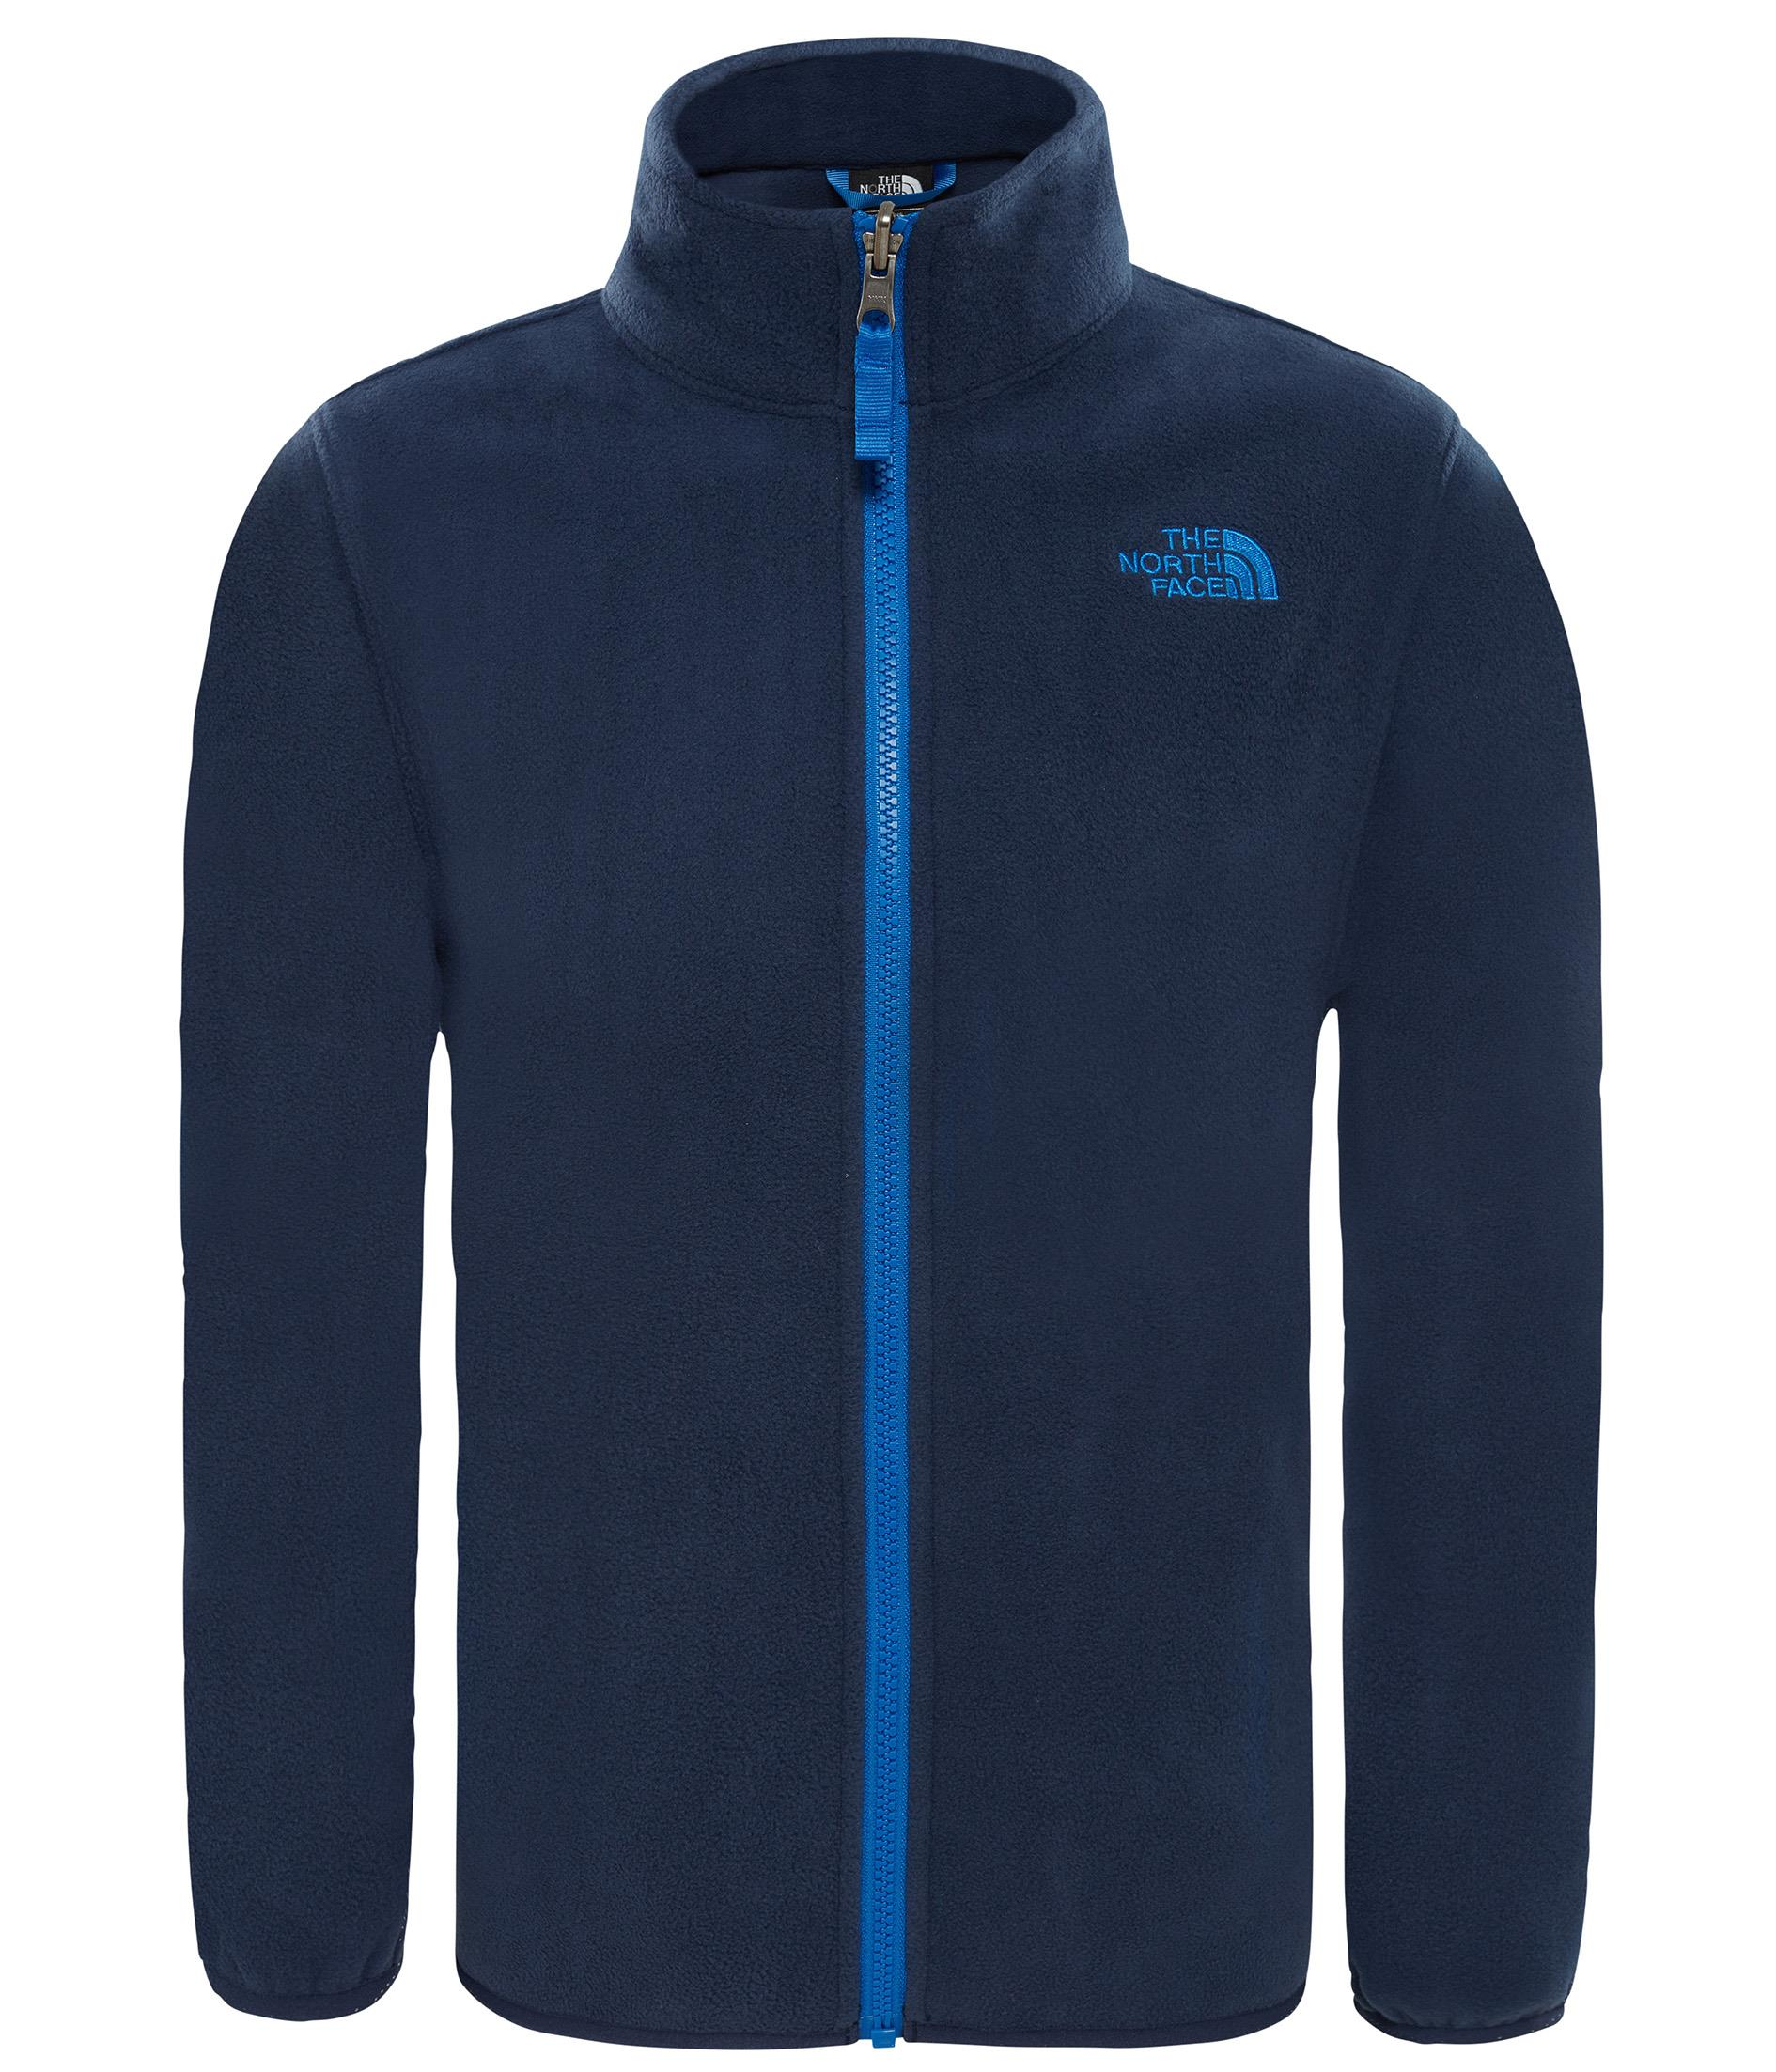 The North Face Elden Rain Triclimate 3in1 Çocuk Ceketi T92U7OWXN